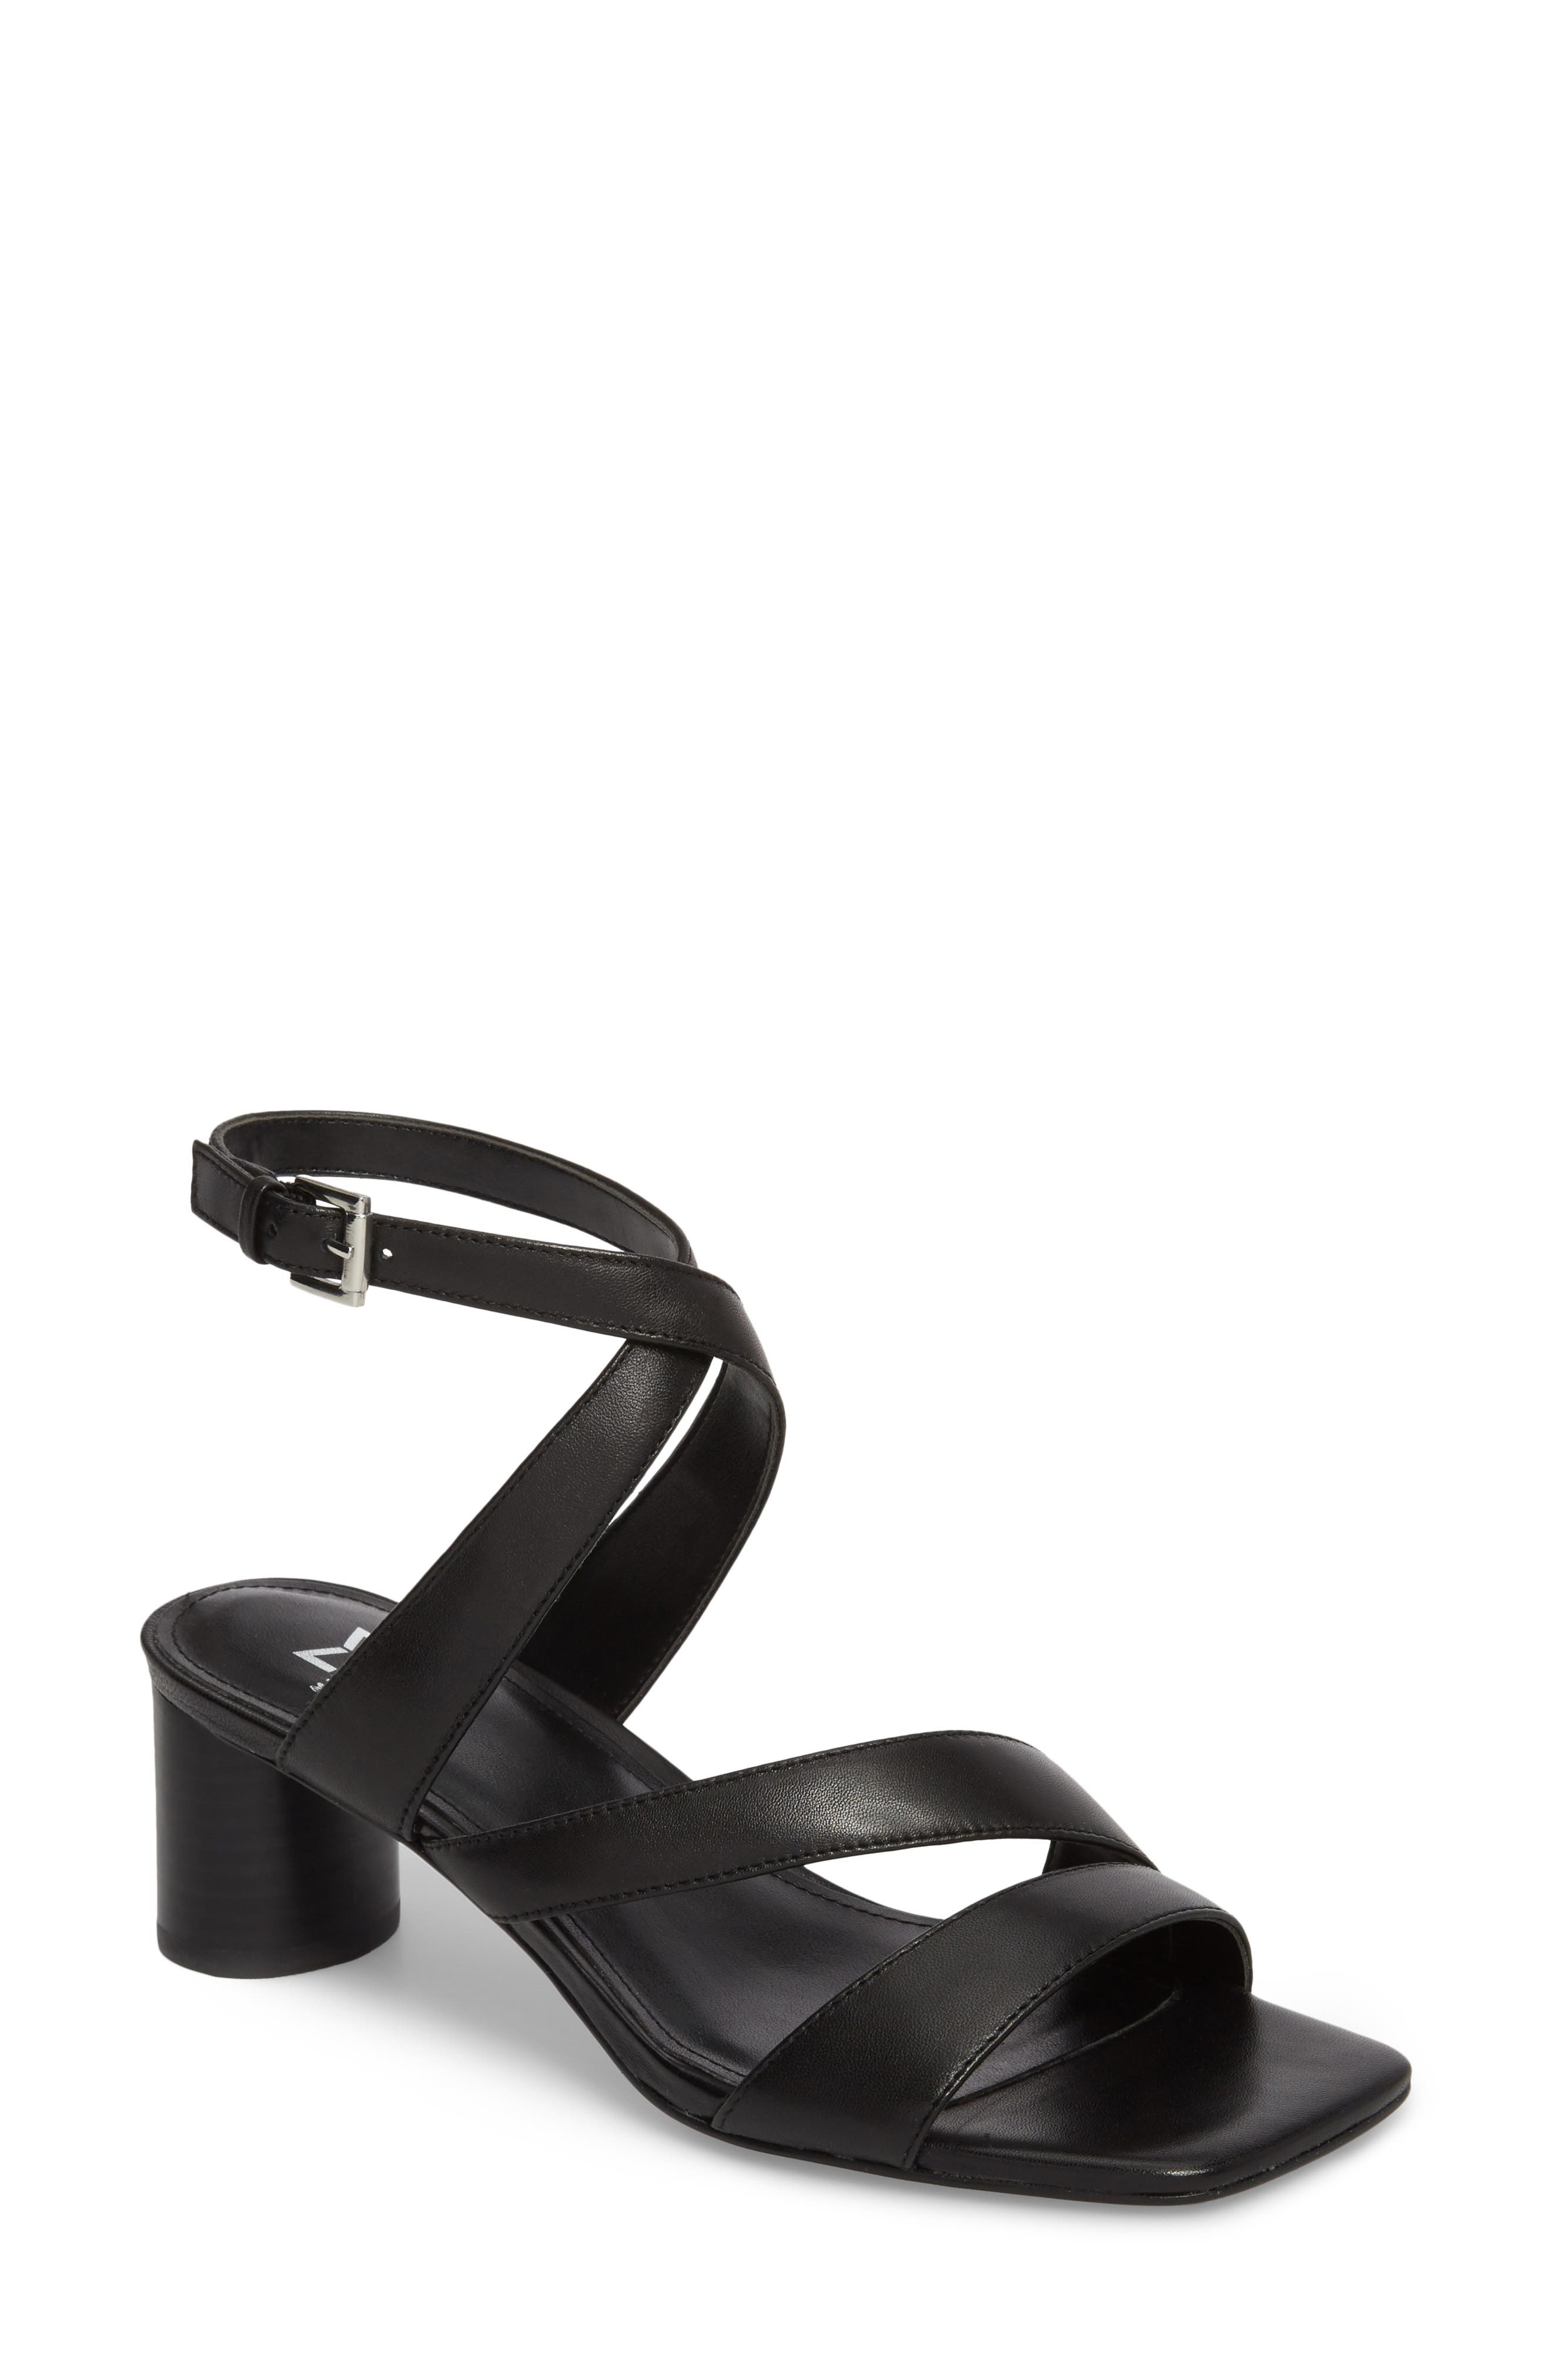 Marc Fischer LTD Idana Strappy Sandal,                             Main thumbnail 1, color,                             001